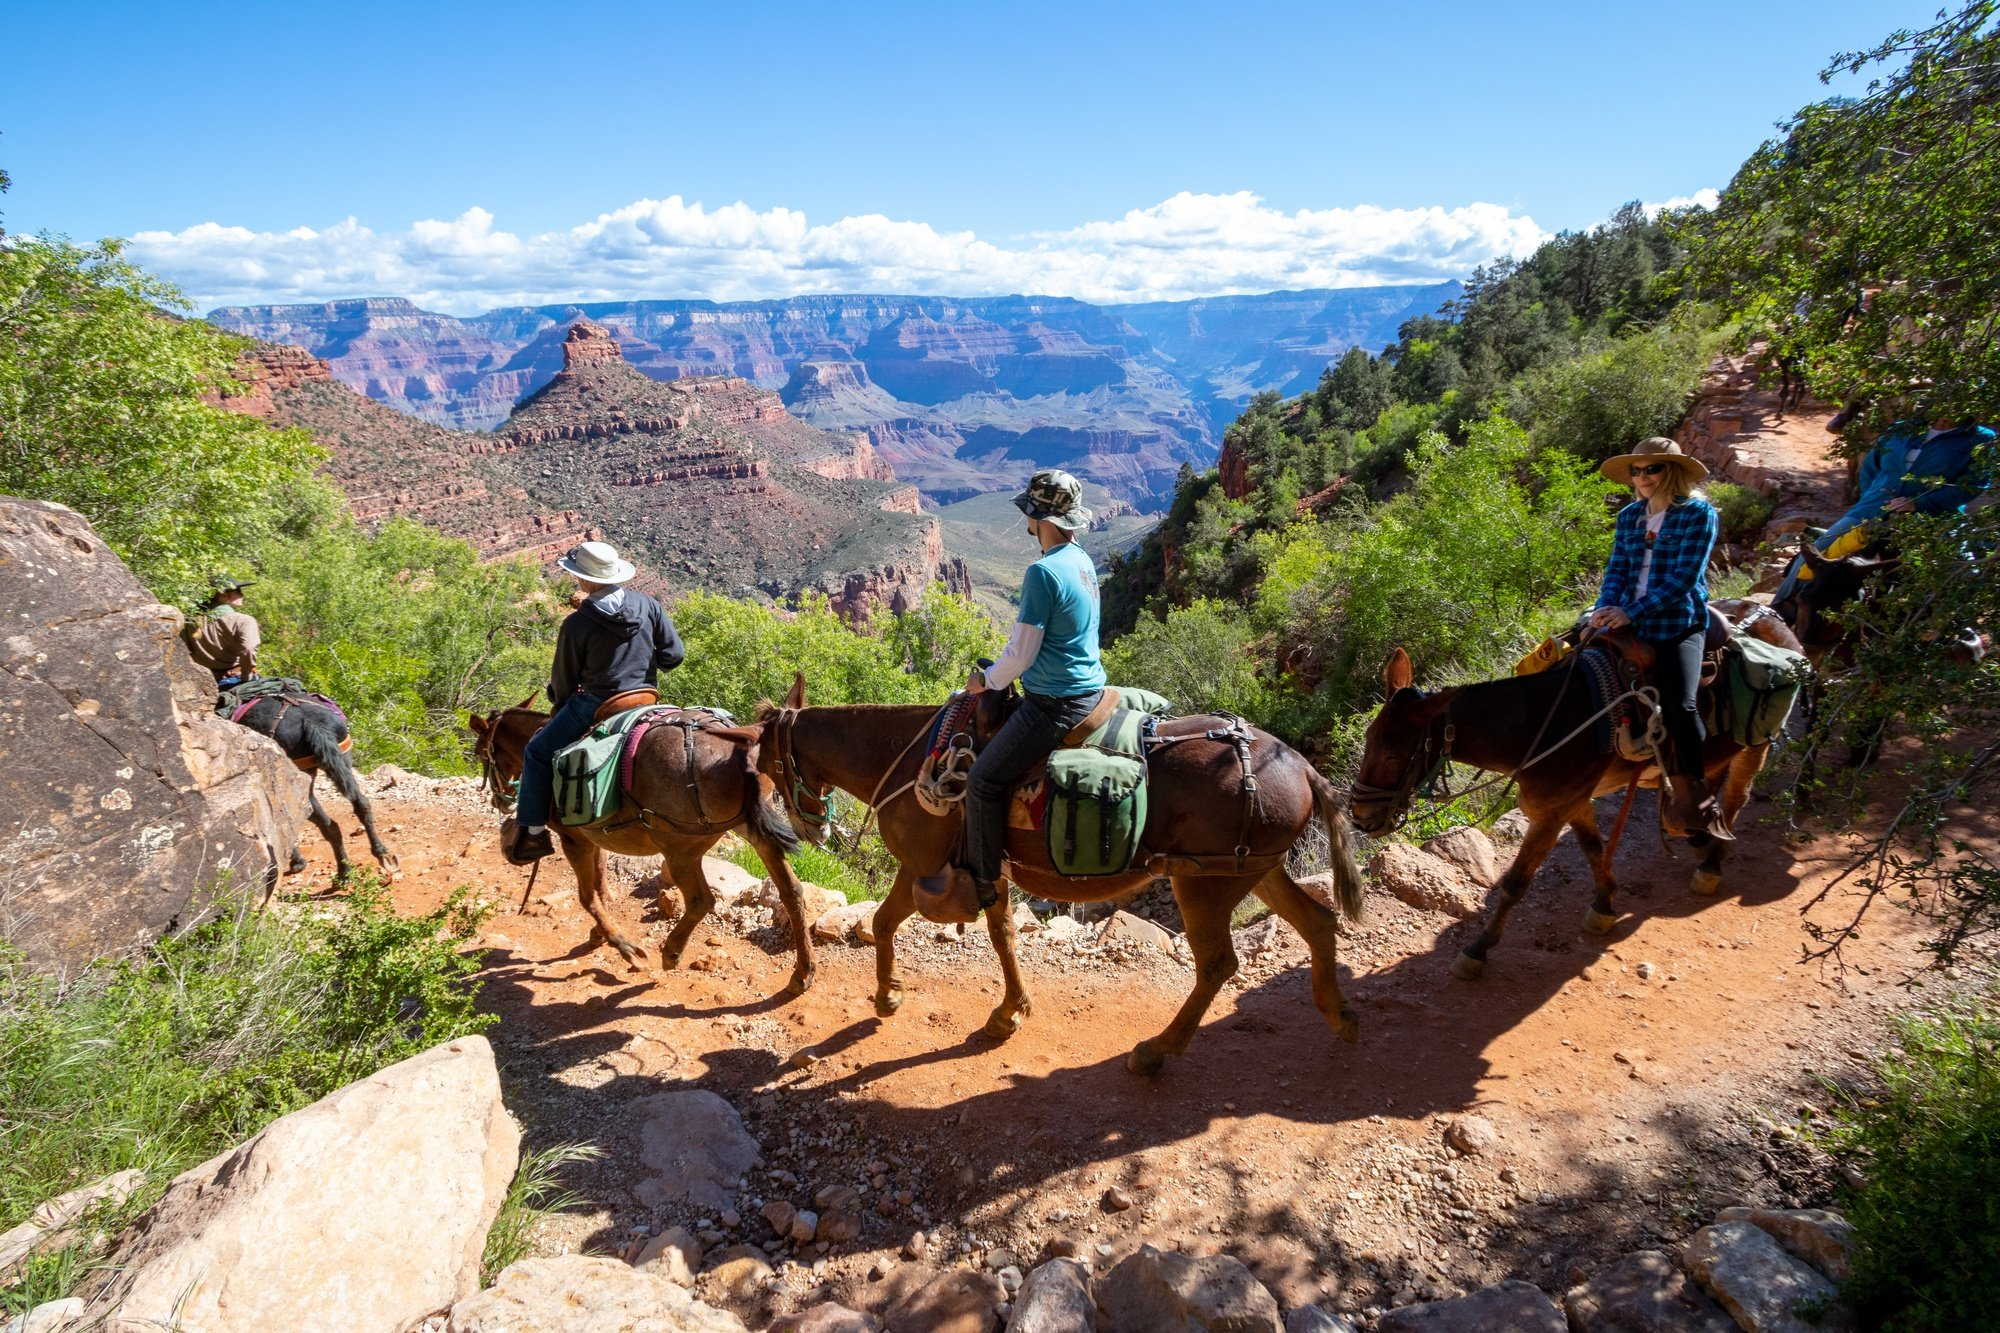 Mule train at the Grand Canyon